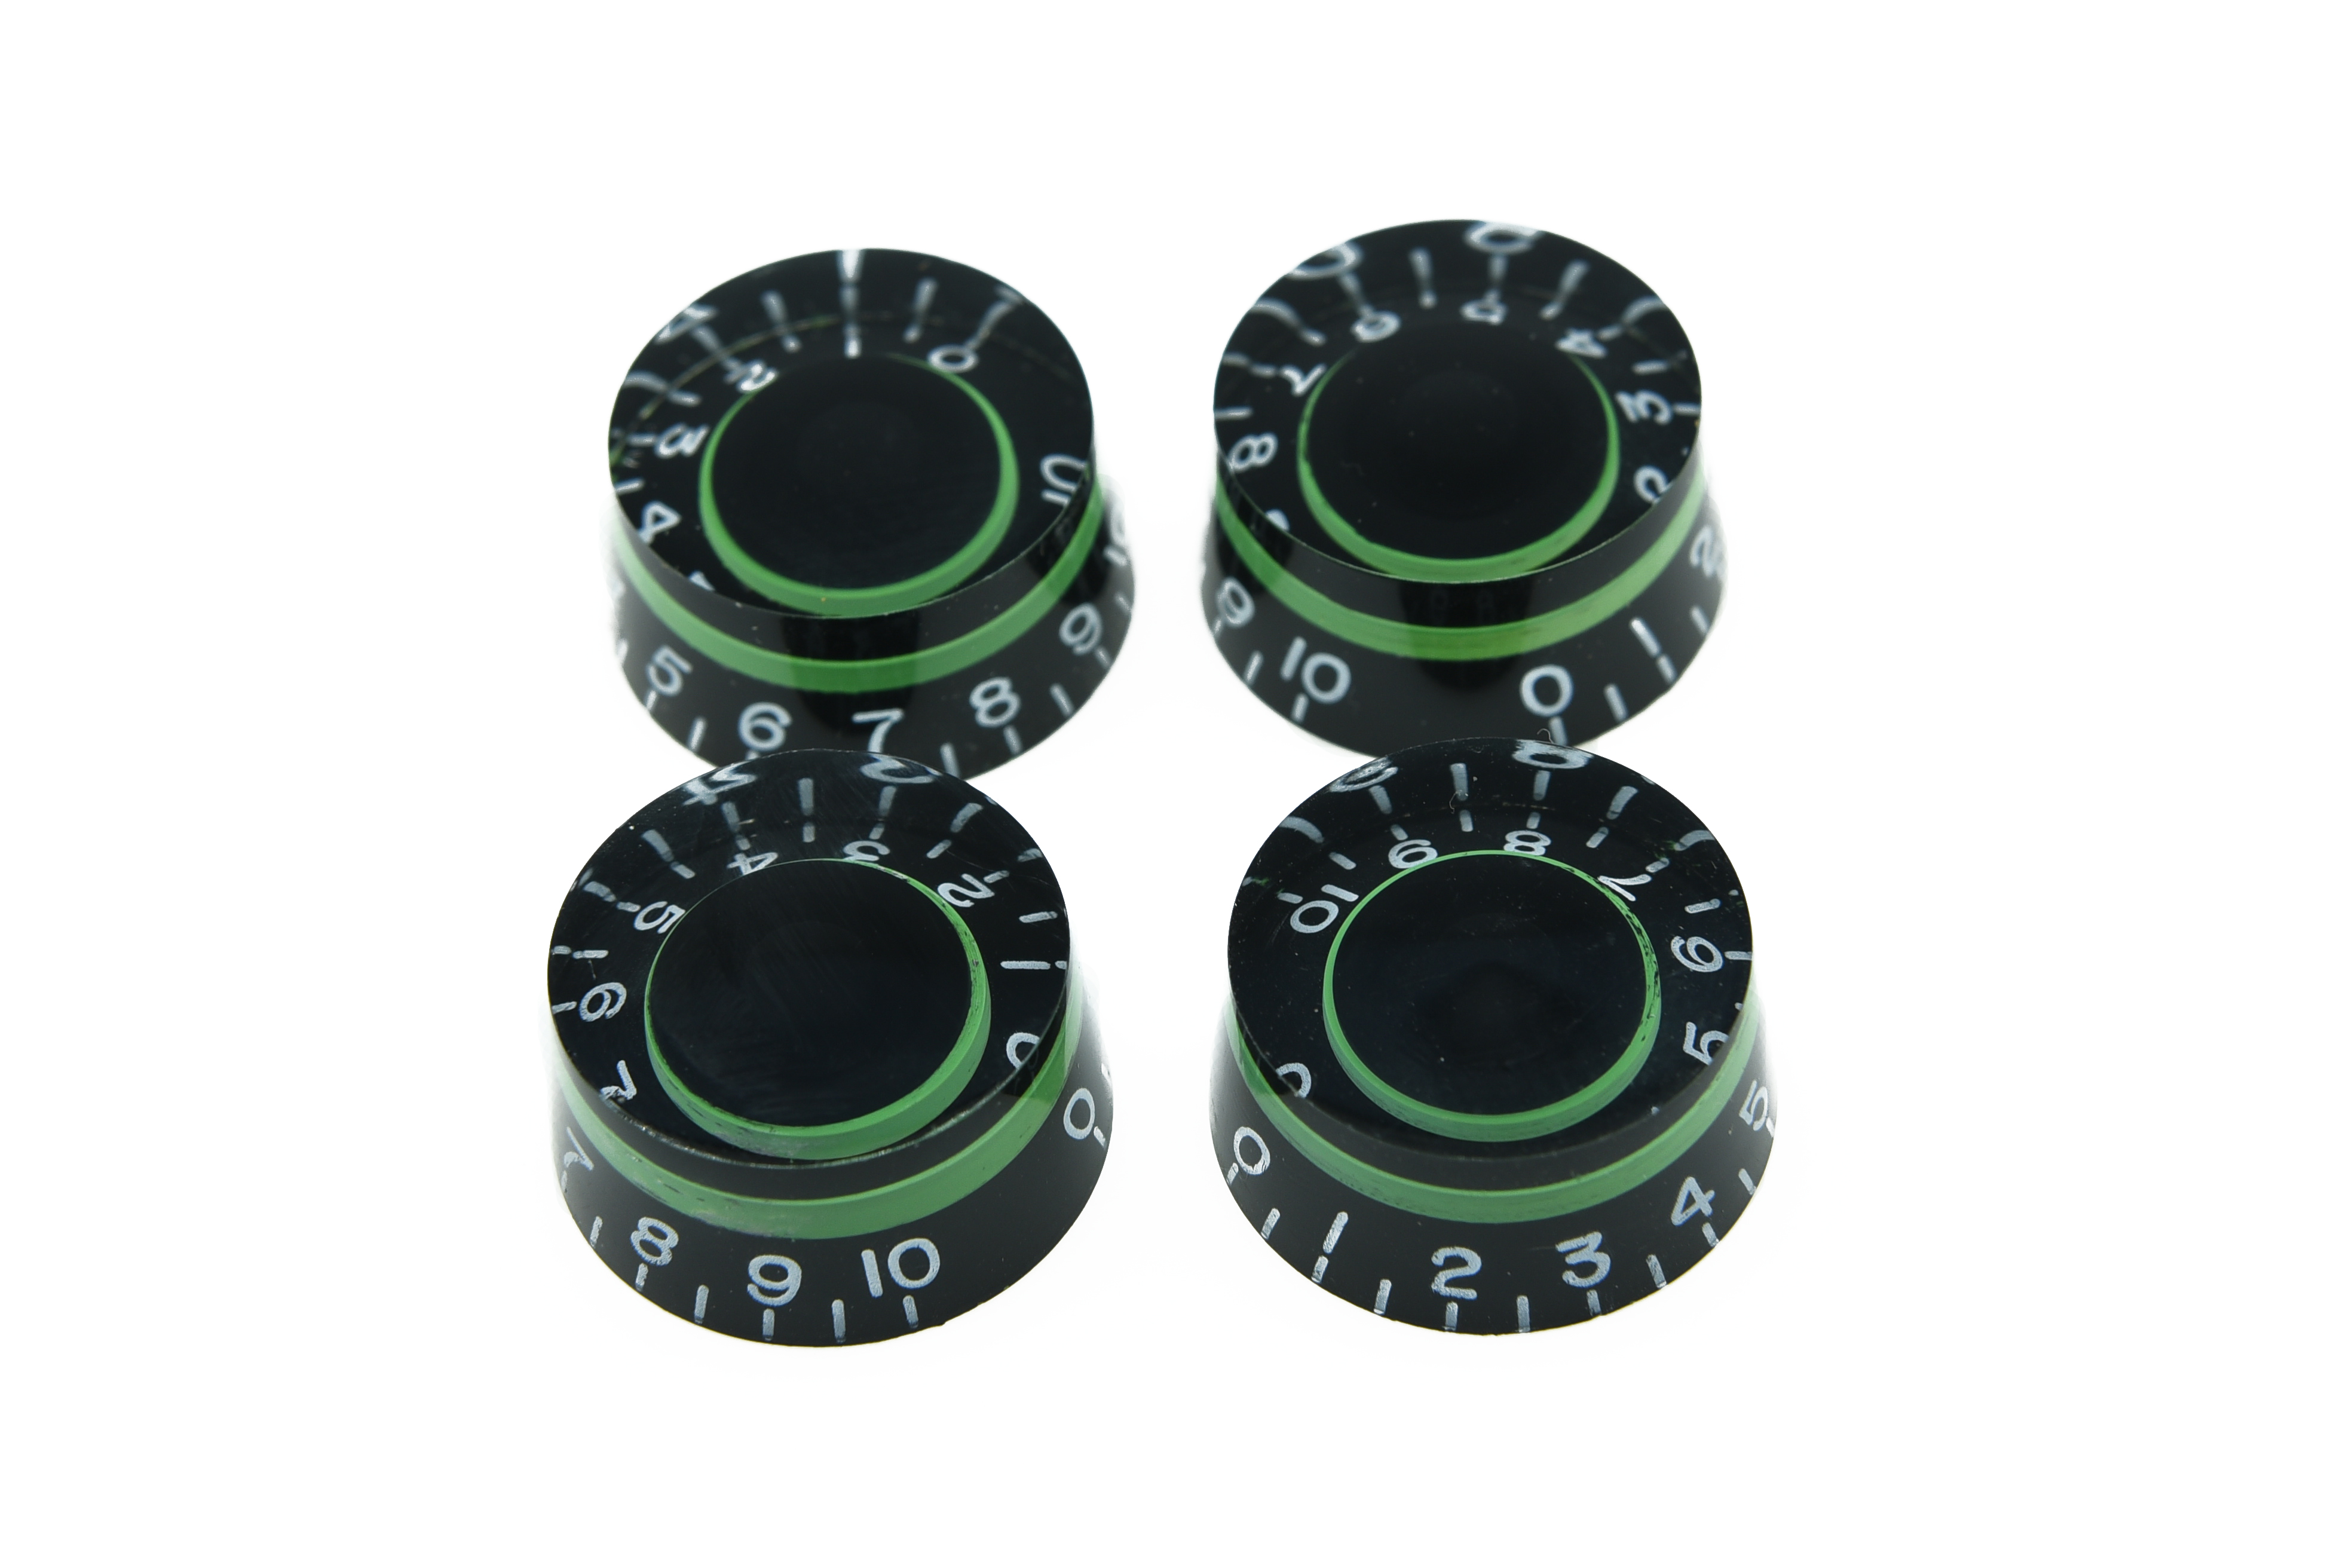 set of 4 lp guitar speed dial knobs control knob black green in guitar parts accessories from. Black Bedroom Furniture Sets. Home Design Ideas